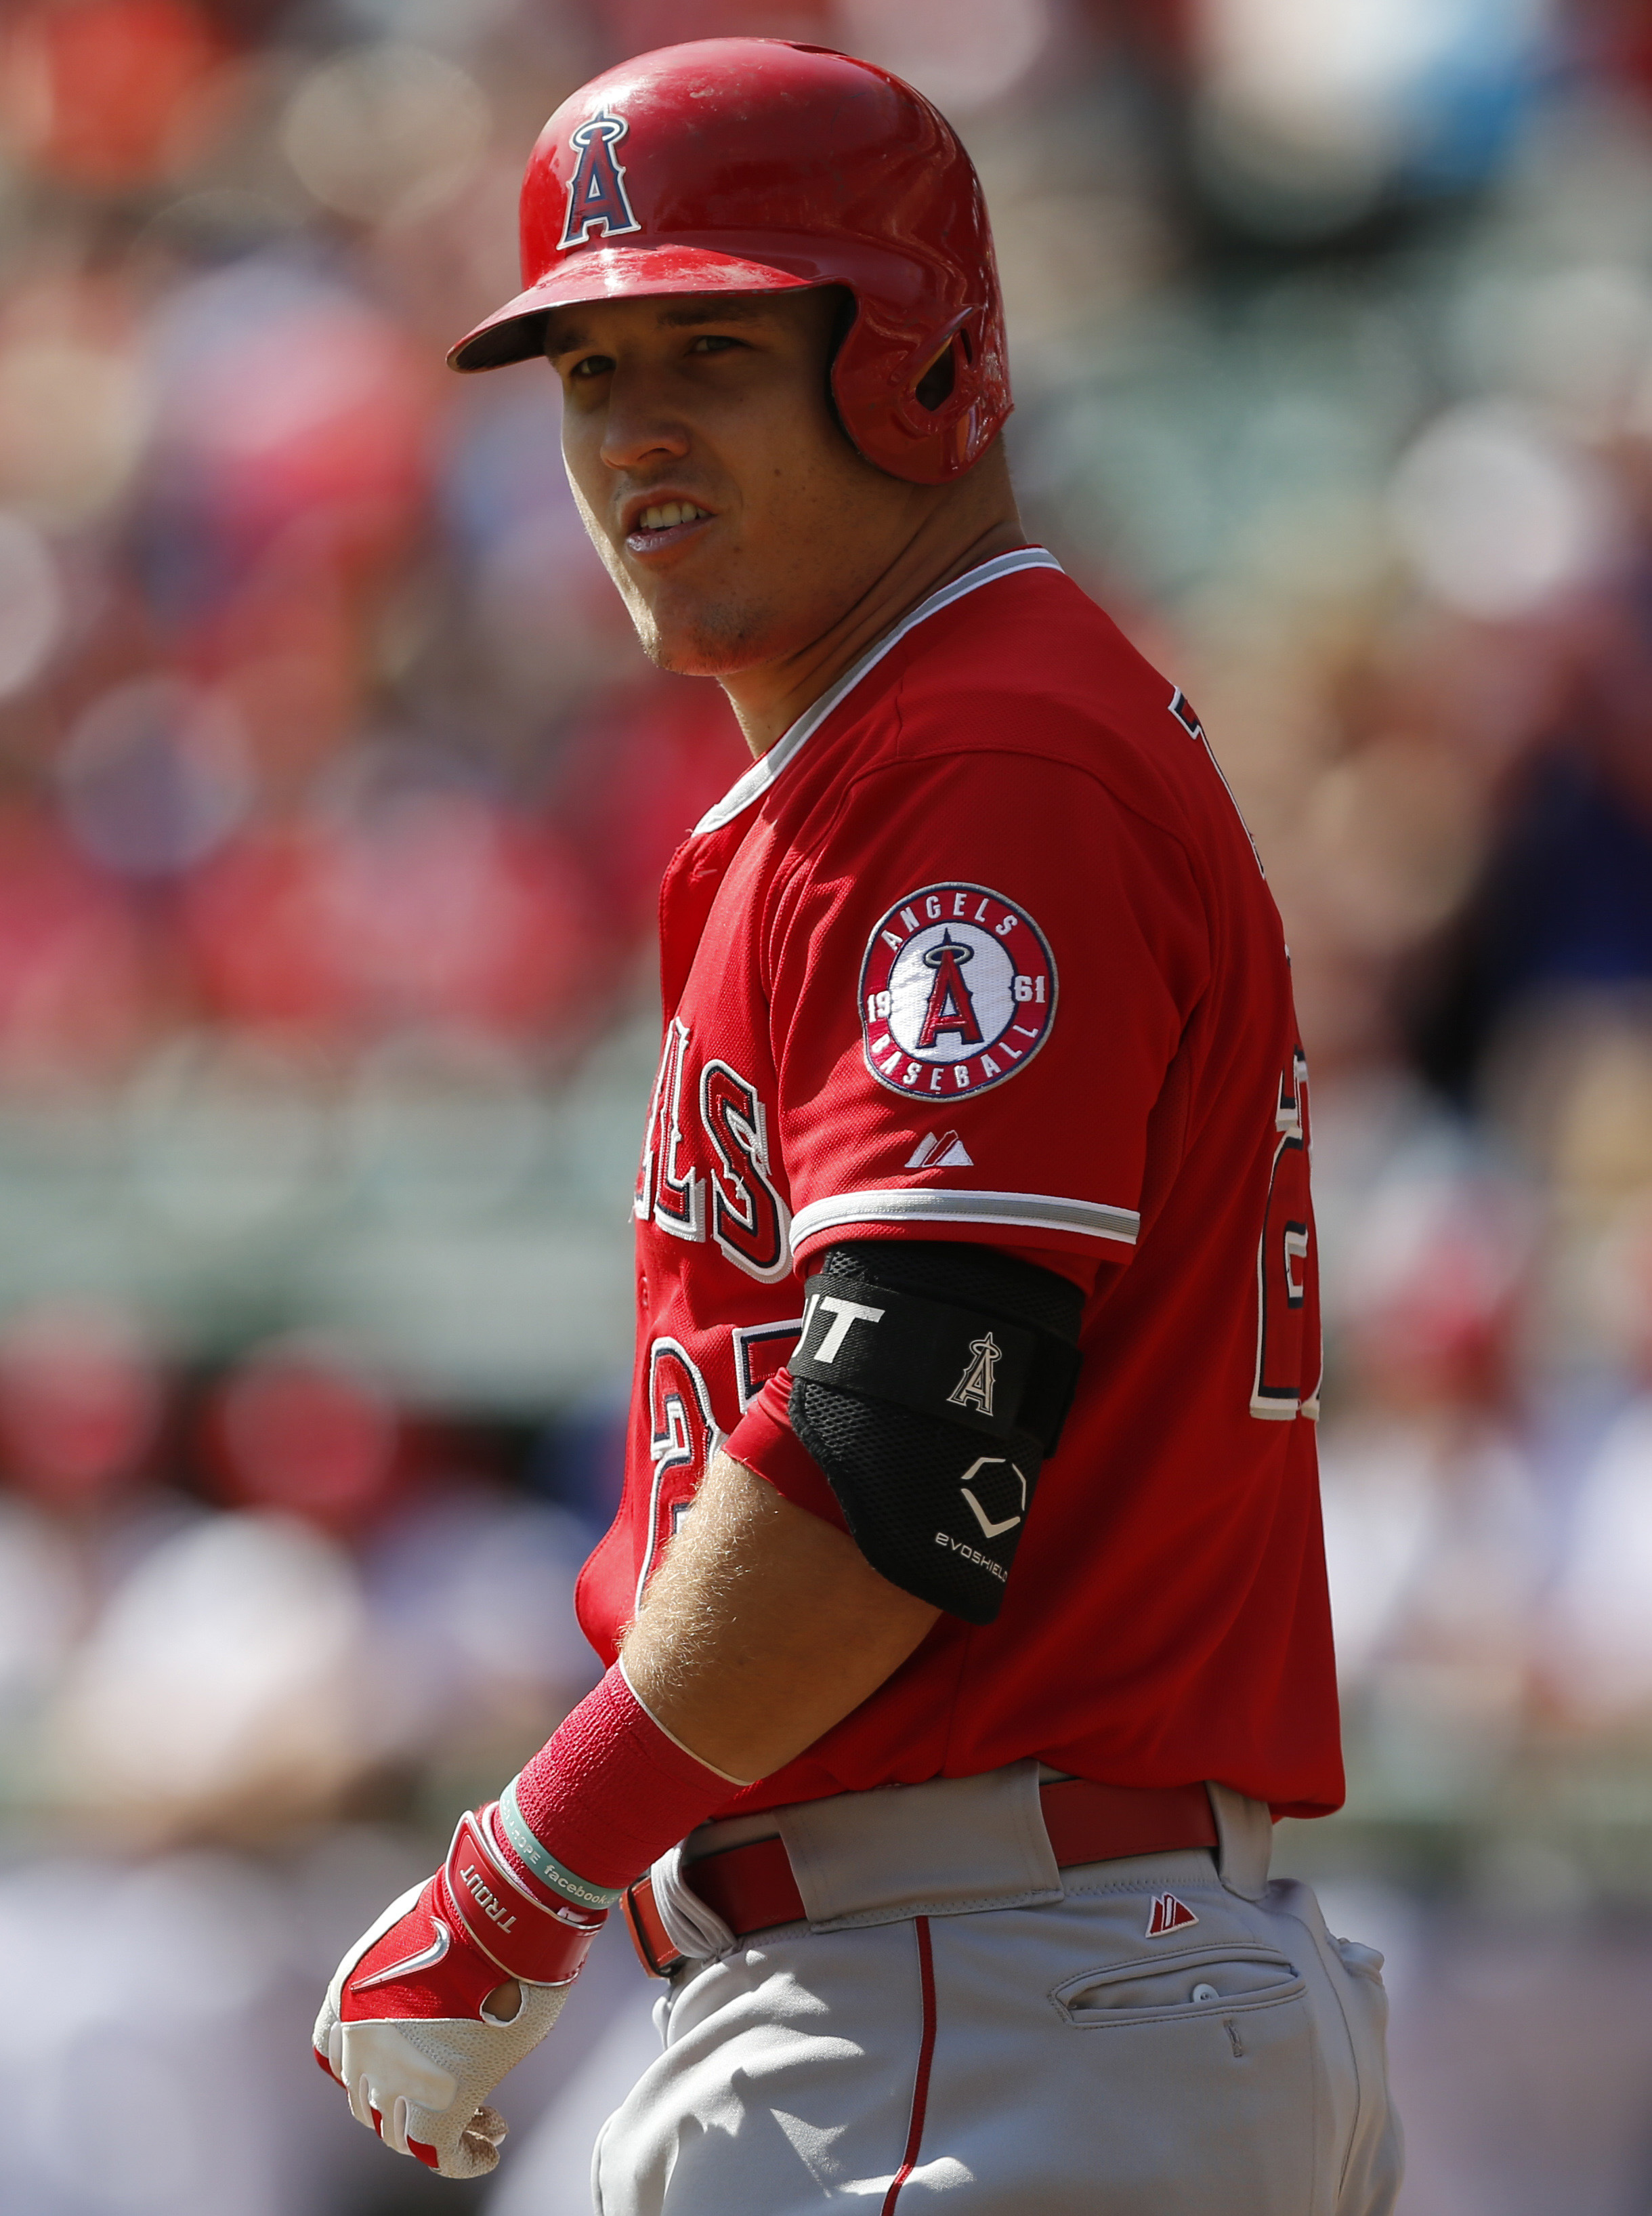 Mike Trout isn't the only fantasy relevant Angel, but he's certainly on his own level. What Angels will succeed in 2016?